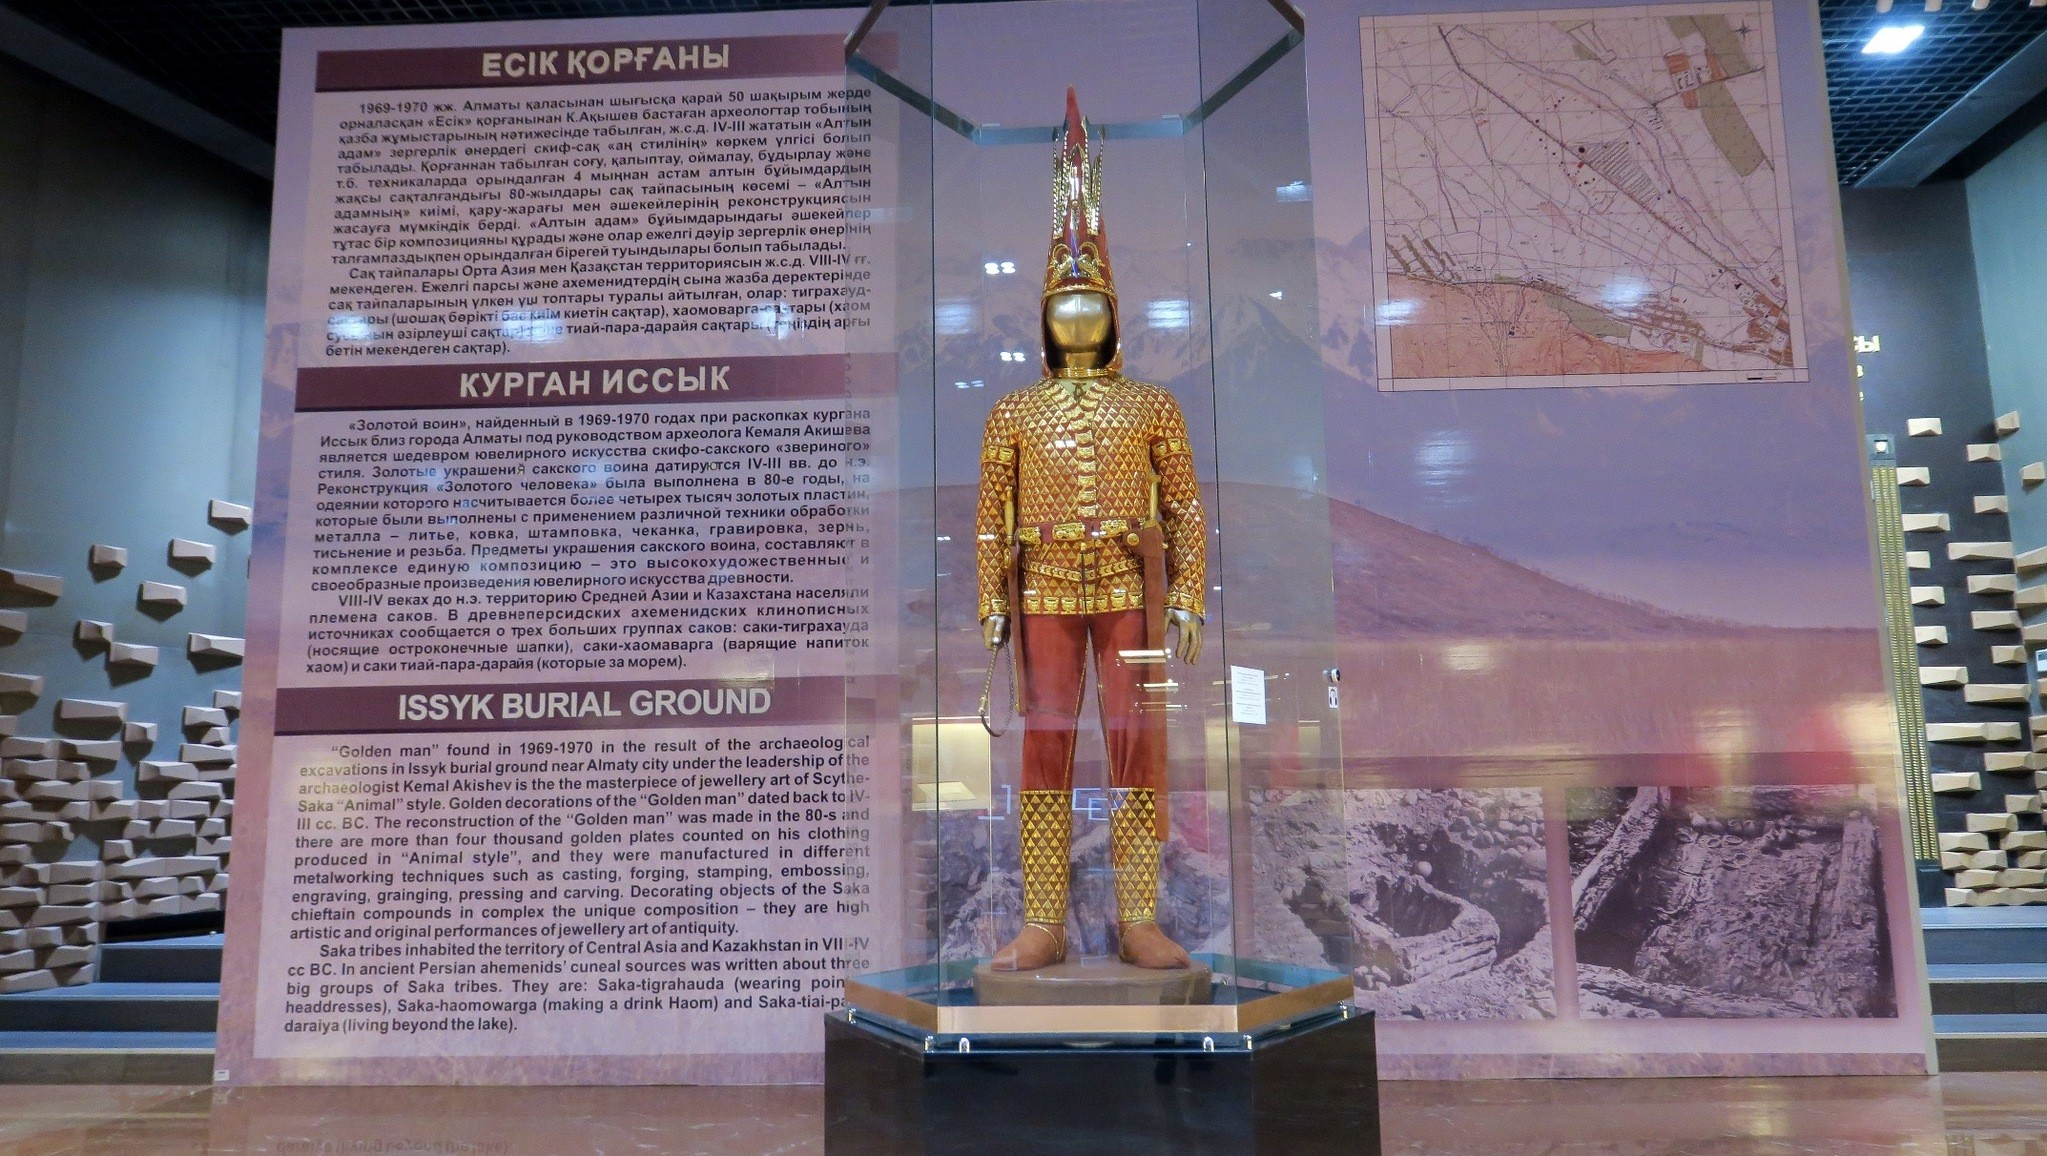 Covered with thousands of pieces of gold, the Golden Man's suit is composed of a shirt, boots and headgear and it is presumed that the golden earrings and rings from the grave also belong to him.